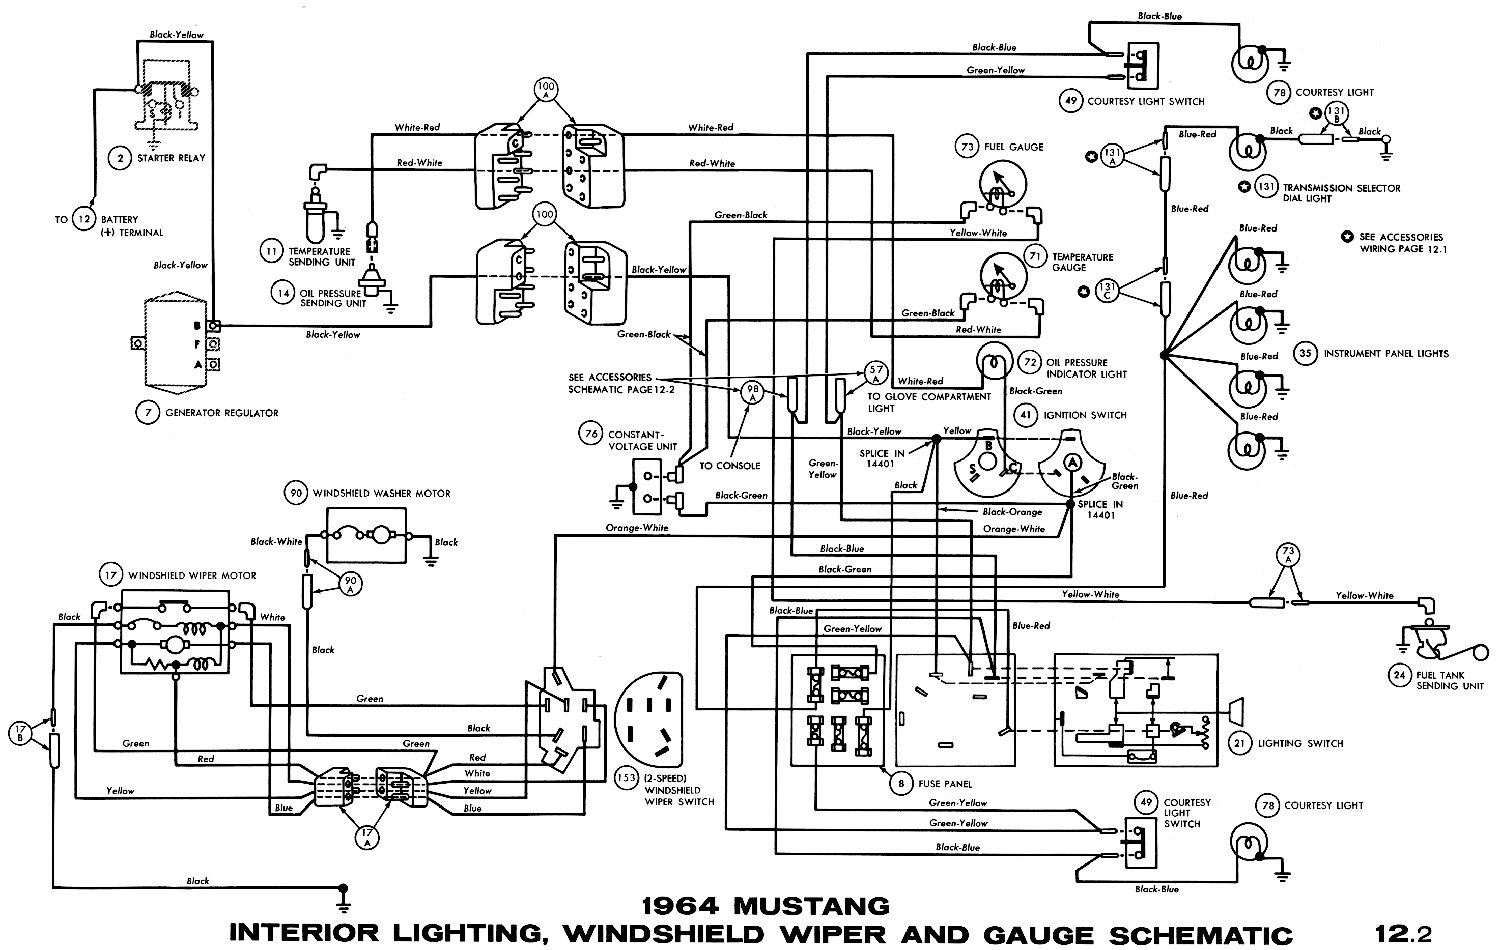 wiper schematic